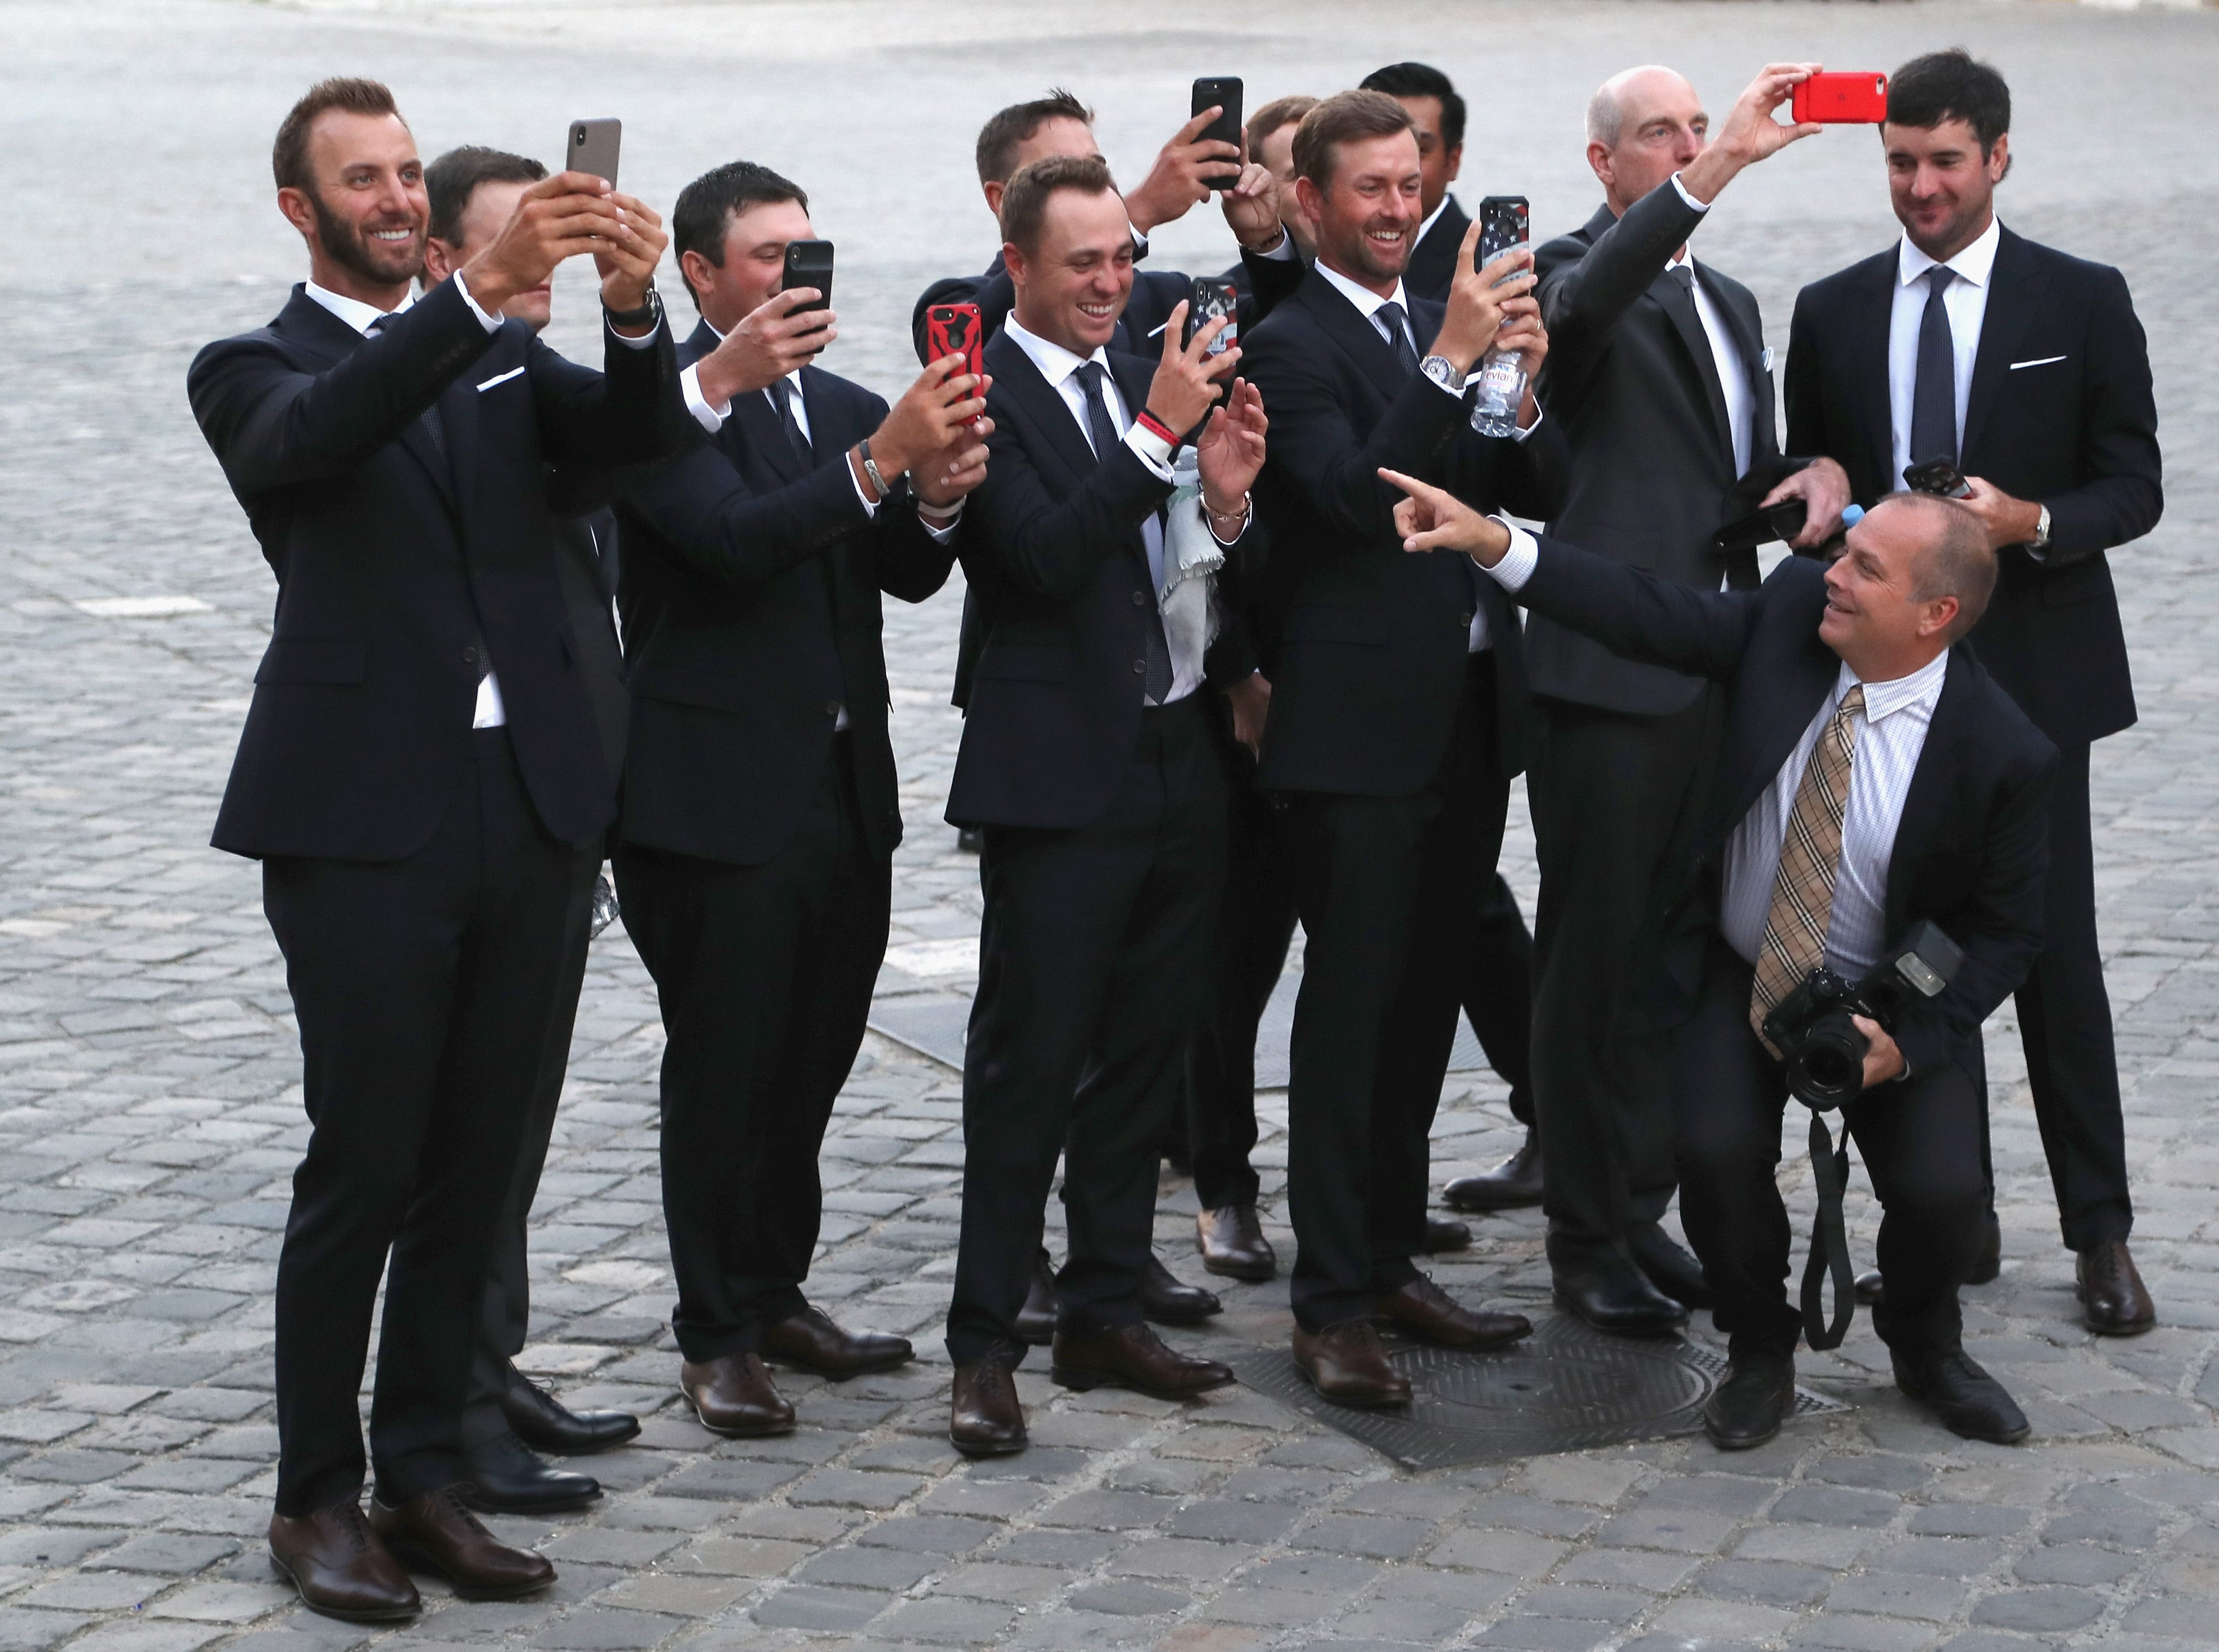 Players take pictures of their wives and partners before the Ryder Cup gala.